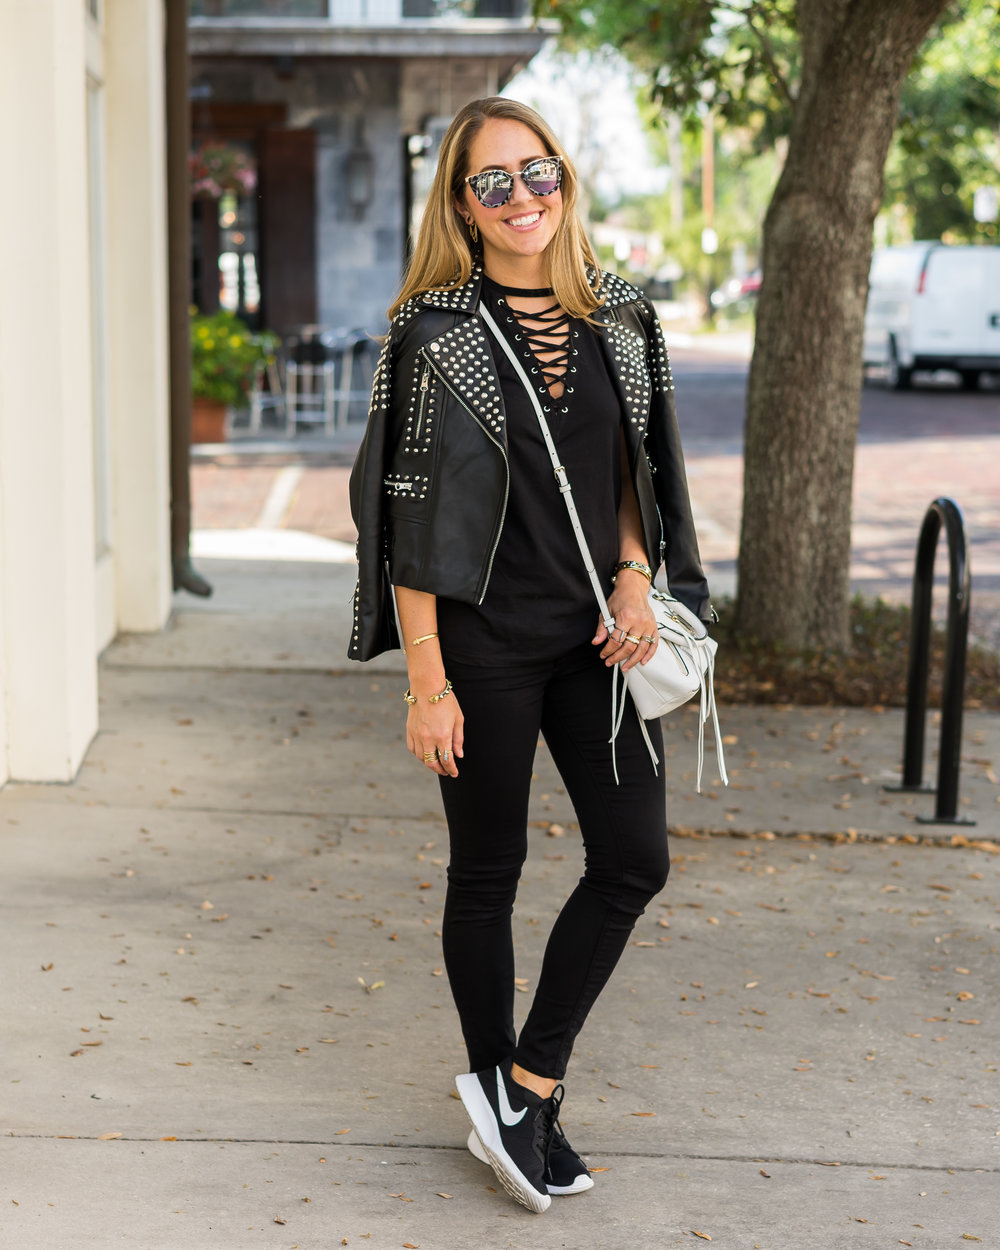 Studded leather jacket, lace up top, Nike Tanjun